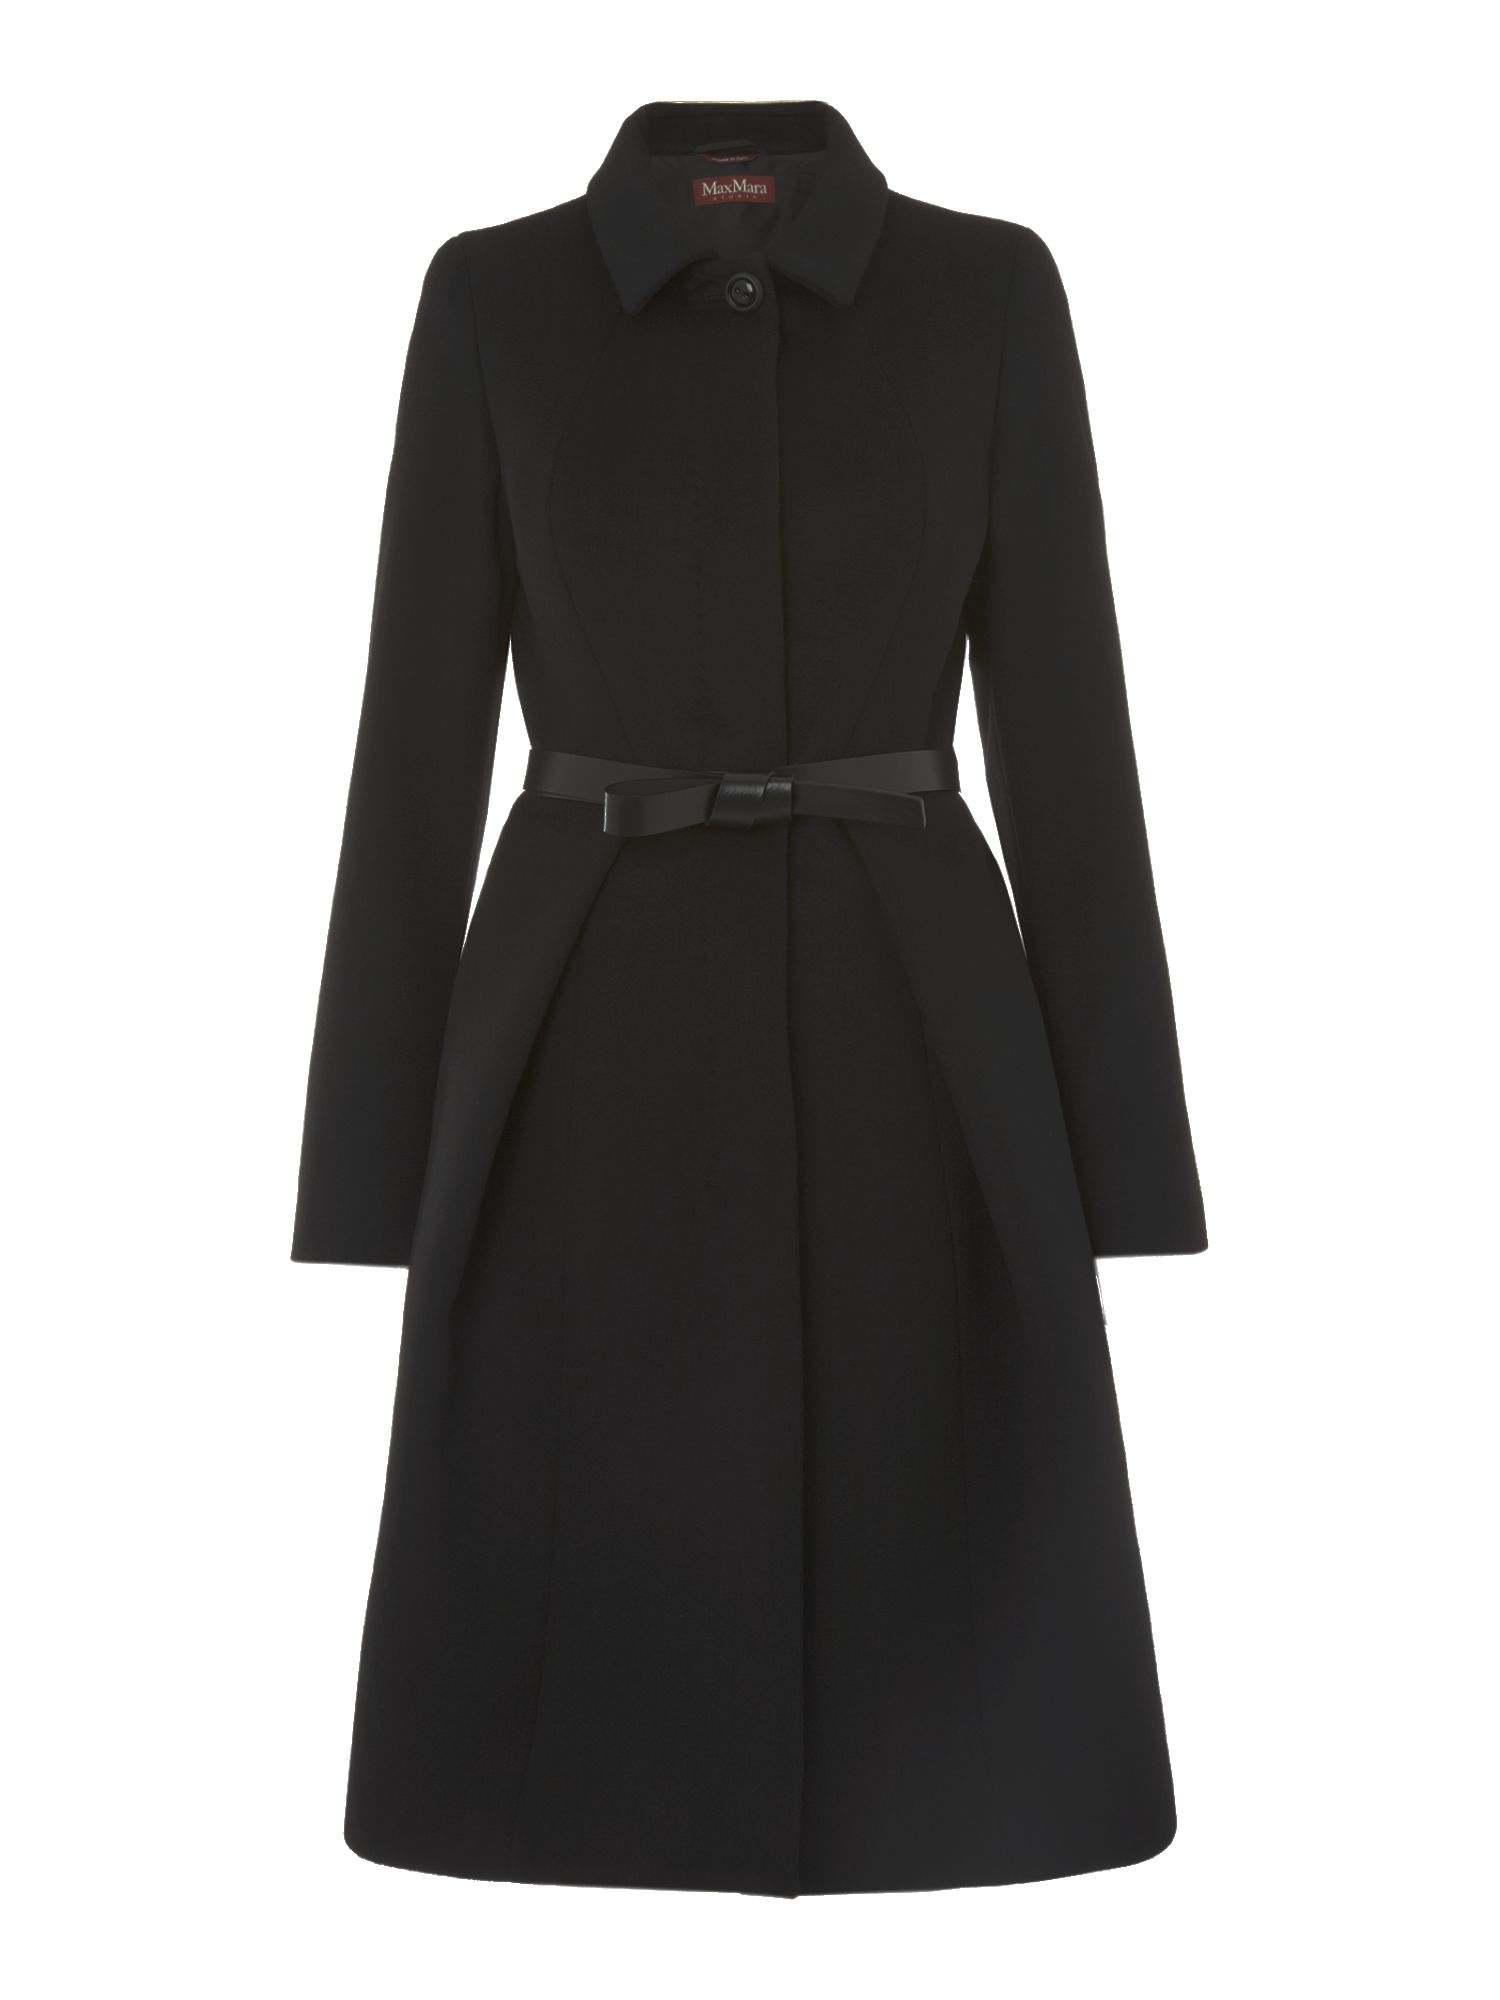 Valdez dress coat with belt